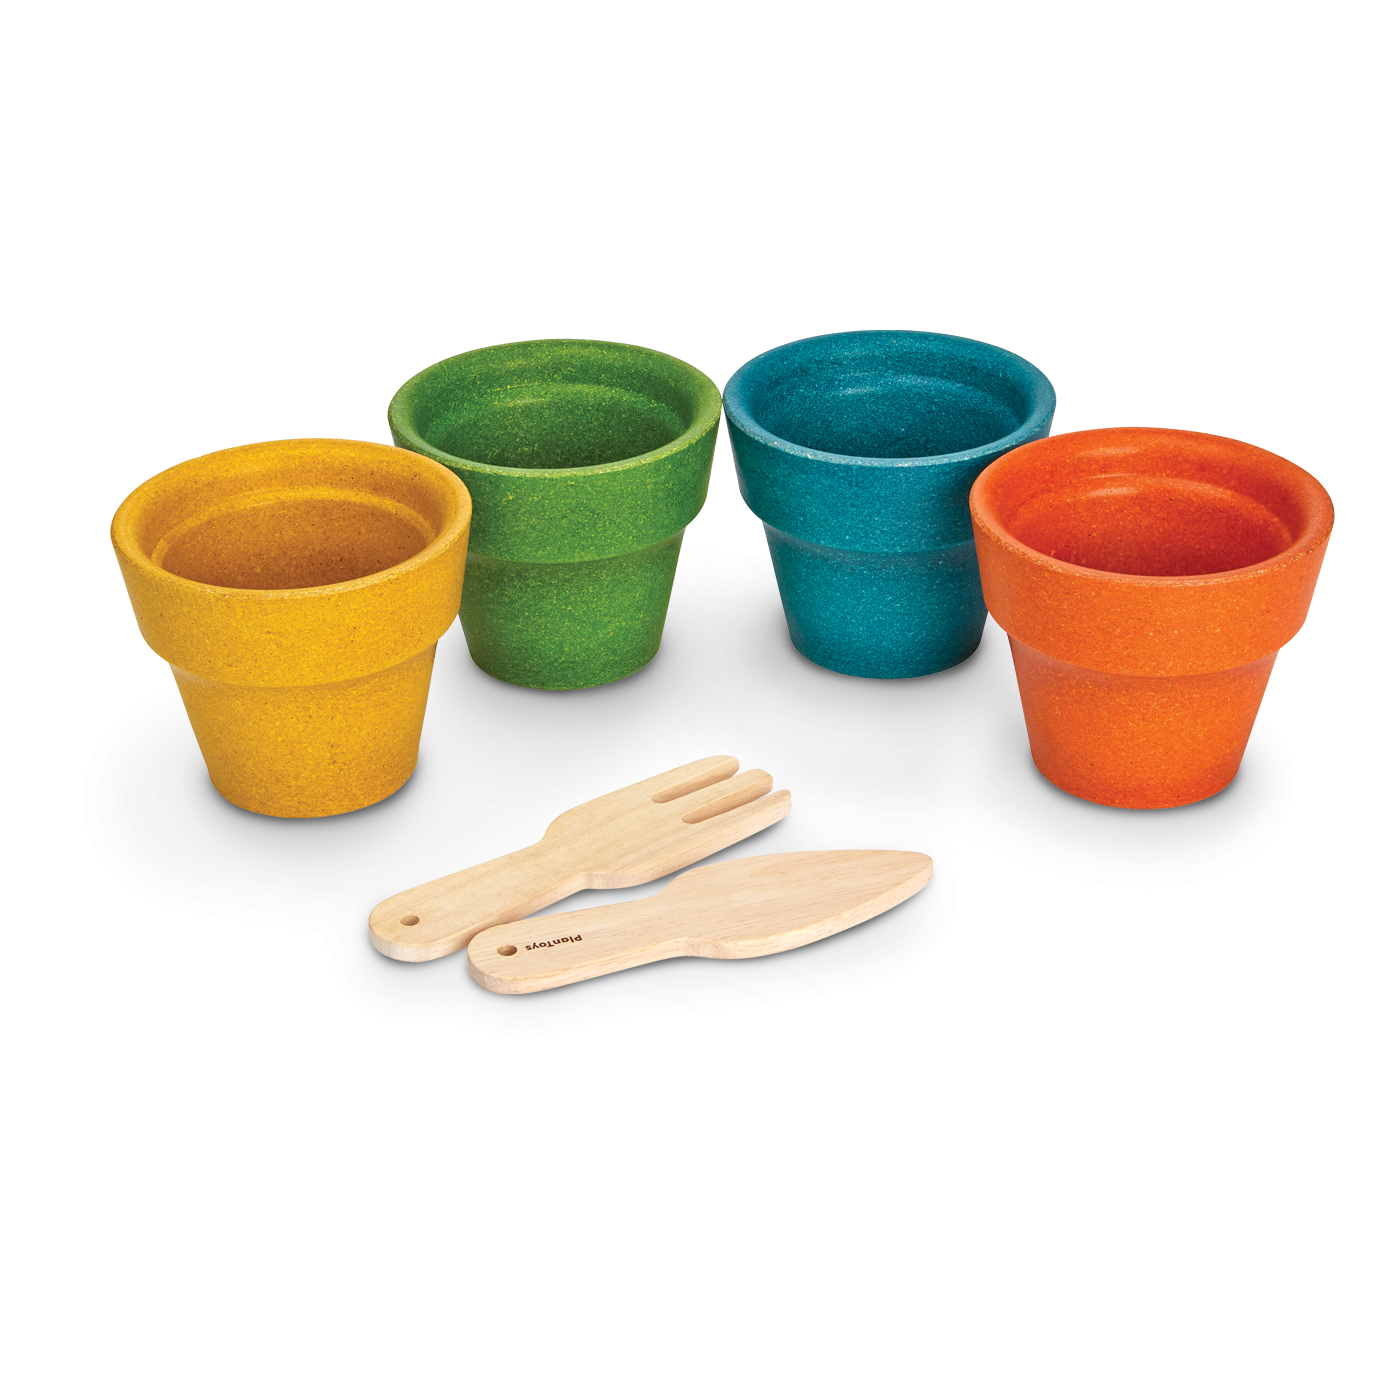 8617_PlanToys_FLOWER_POT_SET_Pretend_Play_2yrs_Emotion_Language_and_Communications_Tactile_Wooden_toys_Education_toys_Safety_Toys_Non-toxic_4.jpg